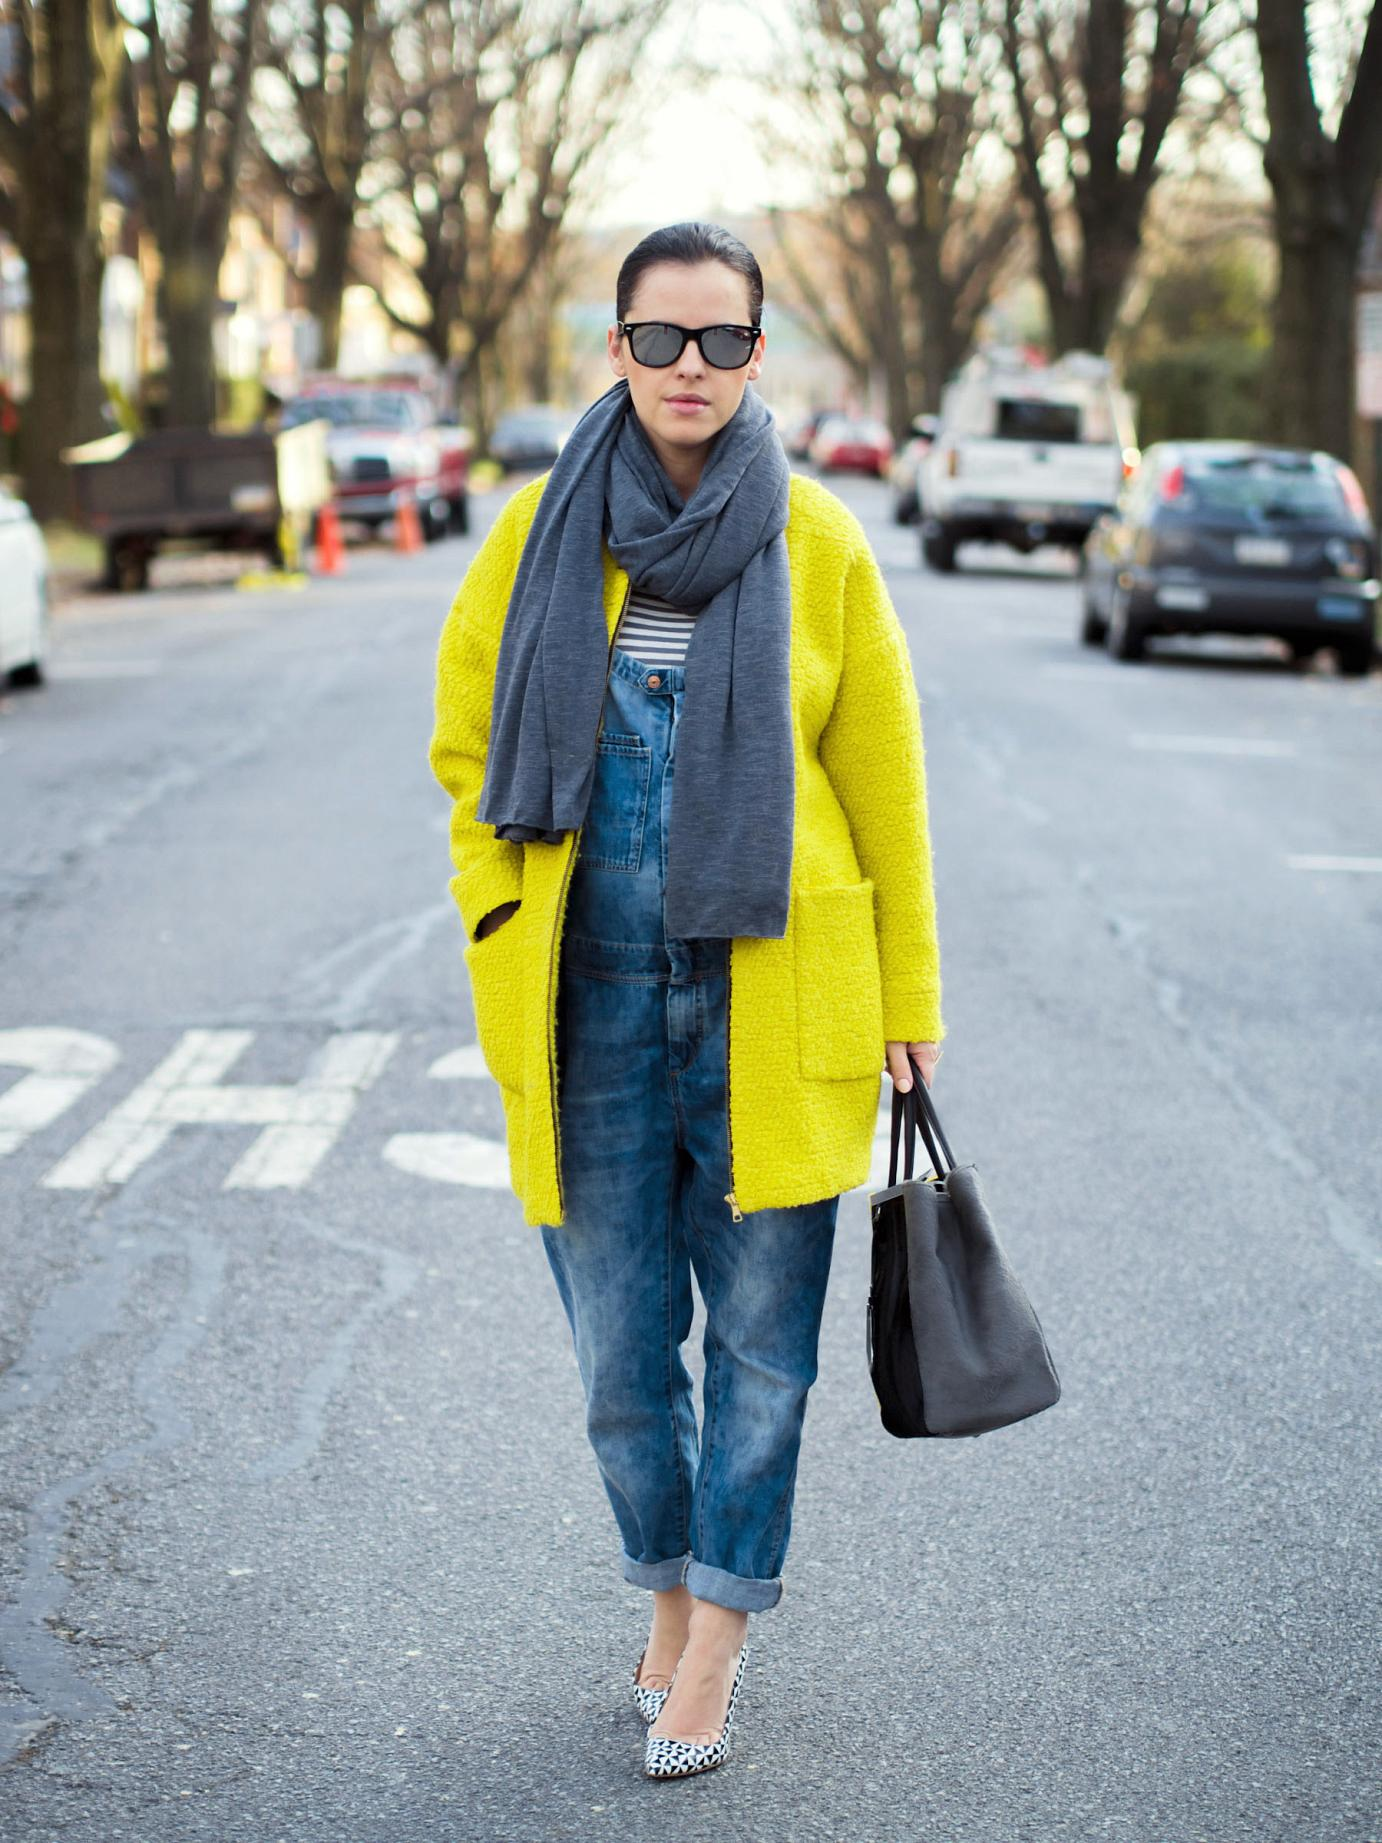 bittersweet colours, street style, yellow coat, colorful coats, maternity style, denim overalls, j.crew shoes, winter, mirrored sunglasses, fendi bag, 2jours bicolor fendi bag,